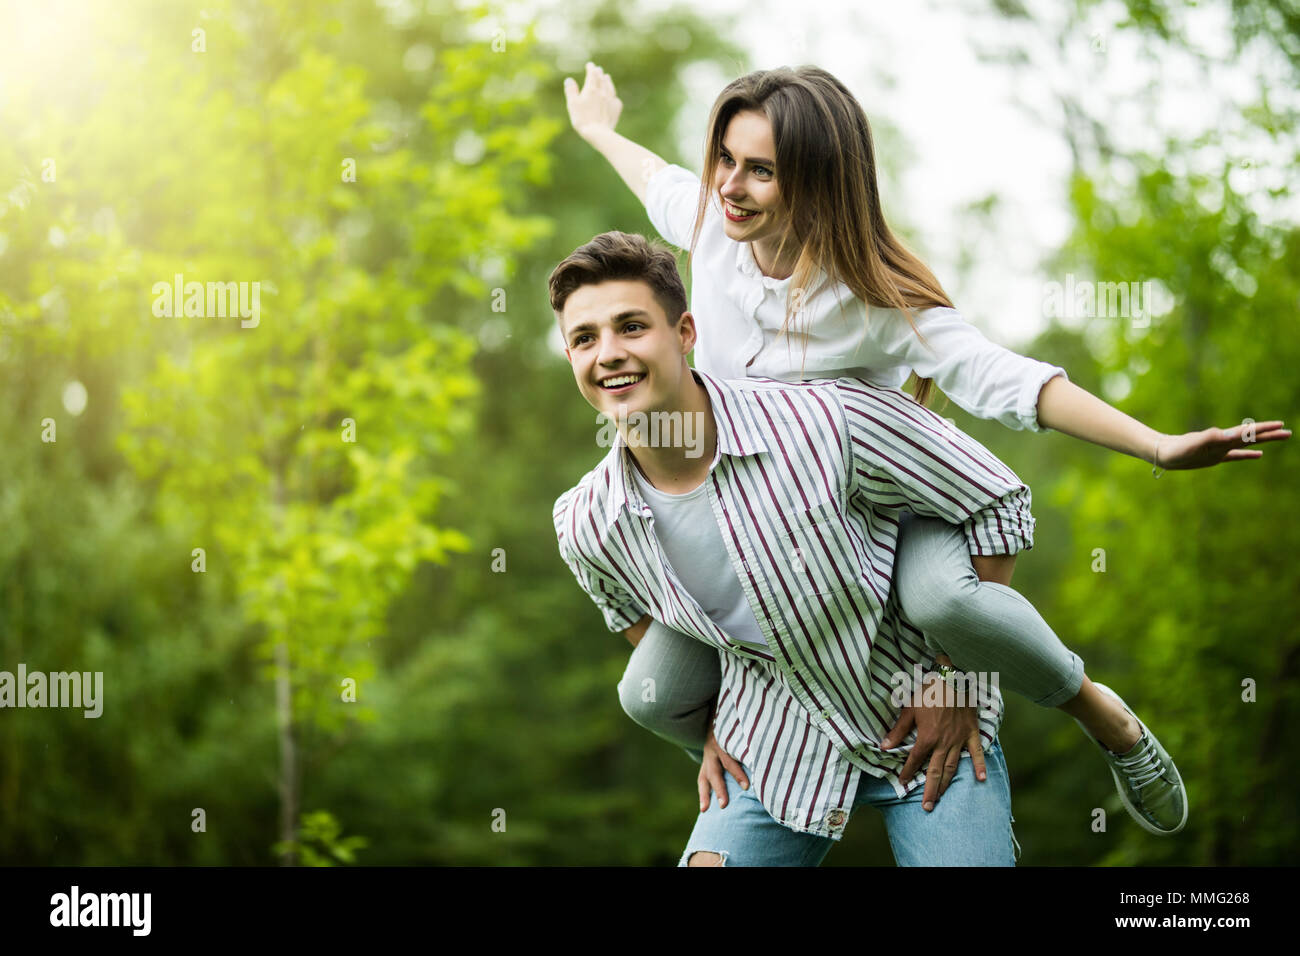 Hipster couple having fun together on a summers day - Stock Image